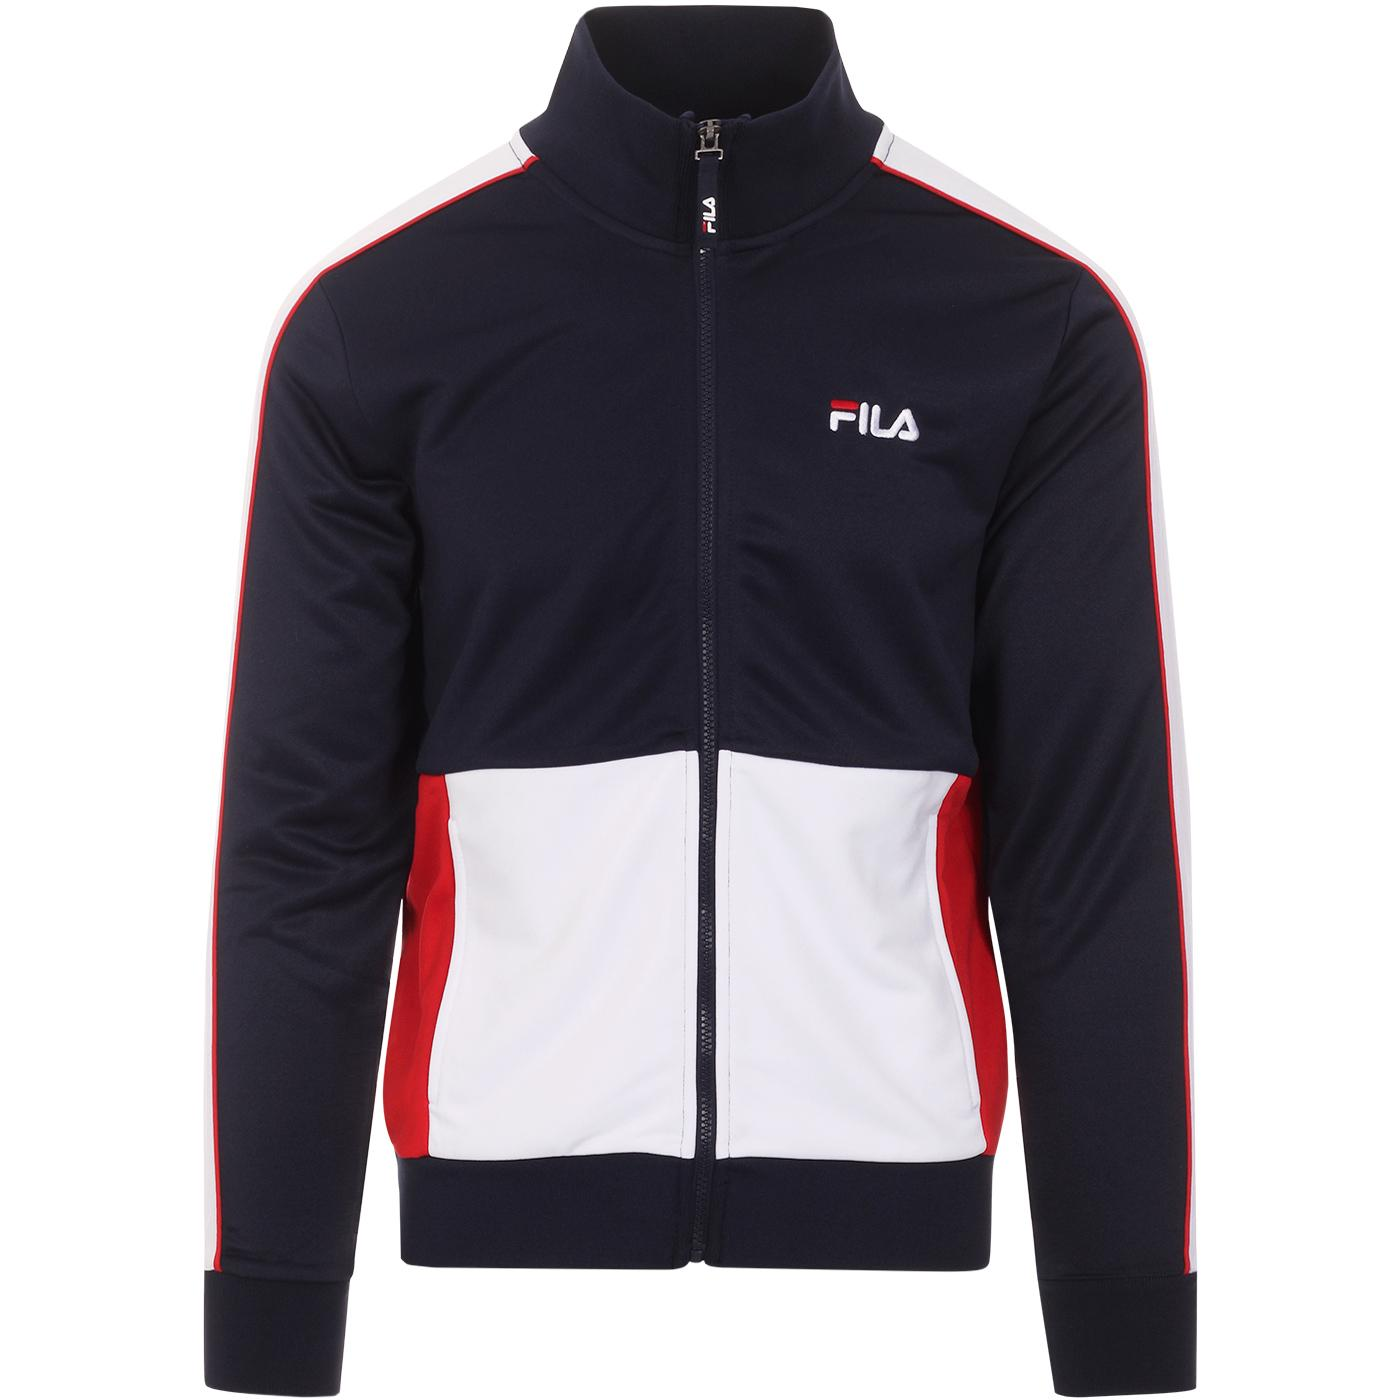 Michele FILA VINTAGE Retro 80s Panel Track Jacket